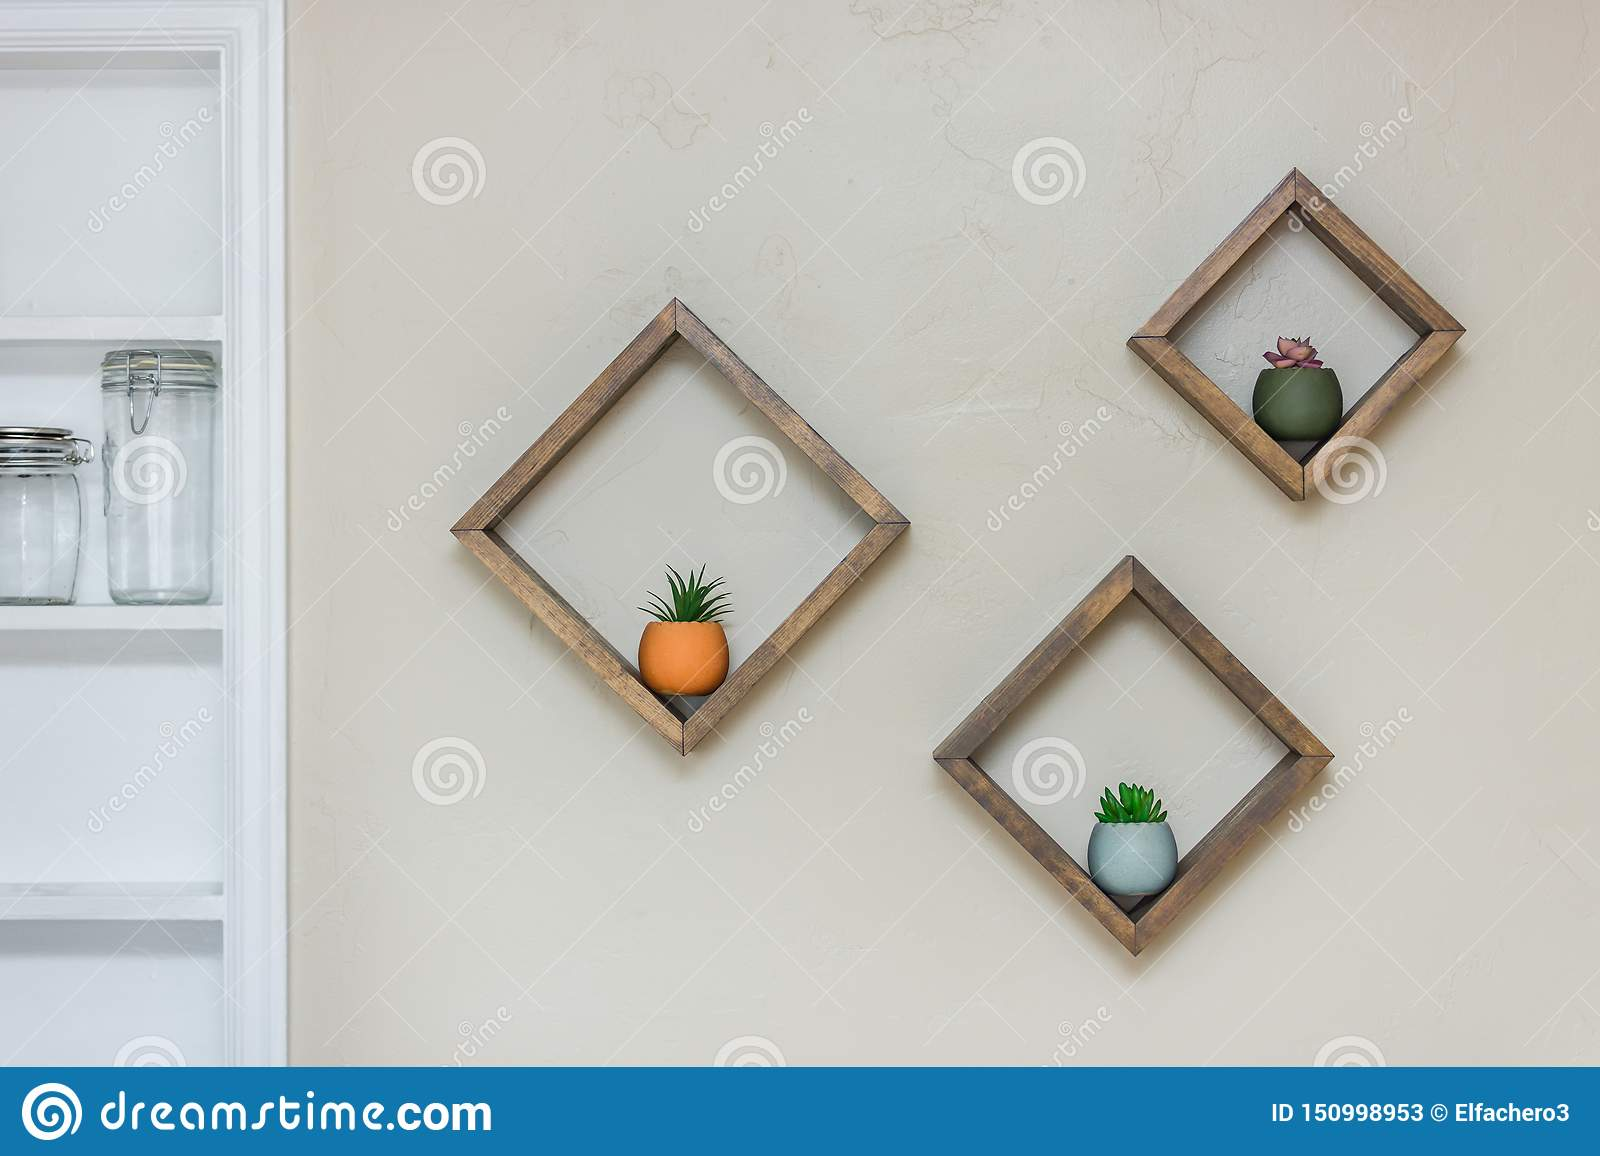 homemade floating shelves wall diamond shaped filling succulents